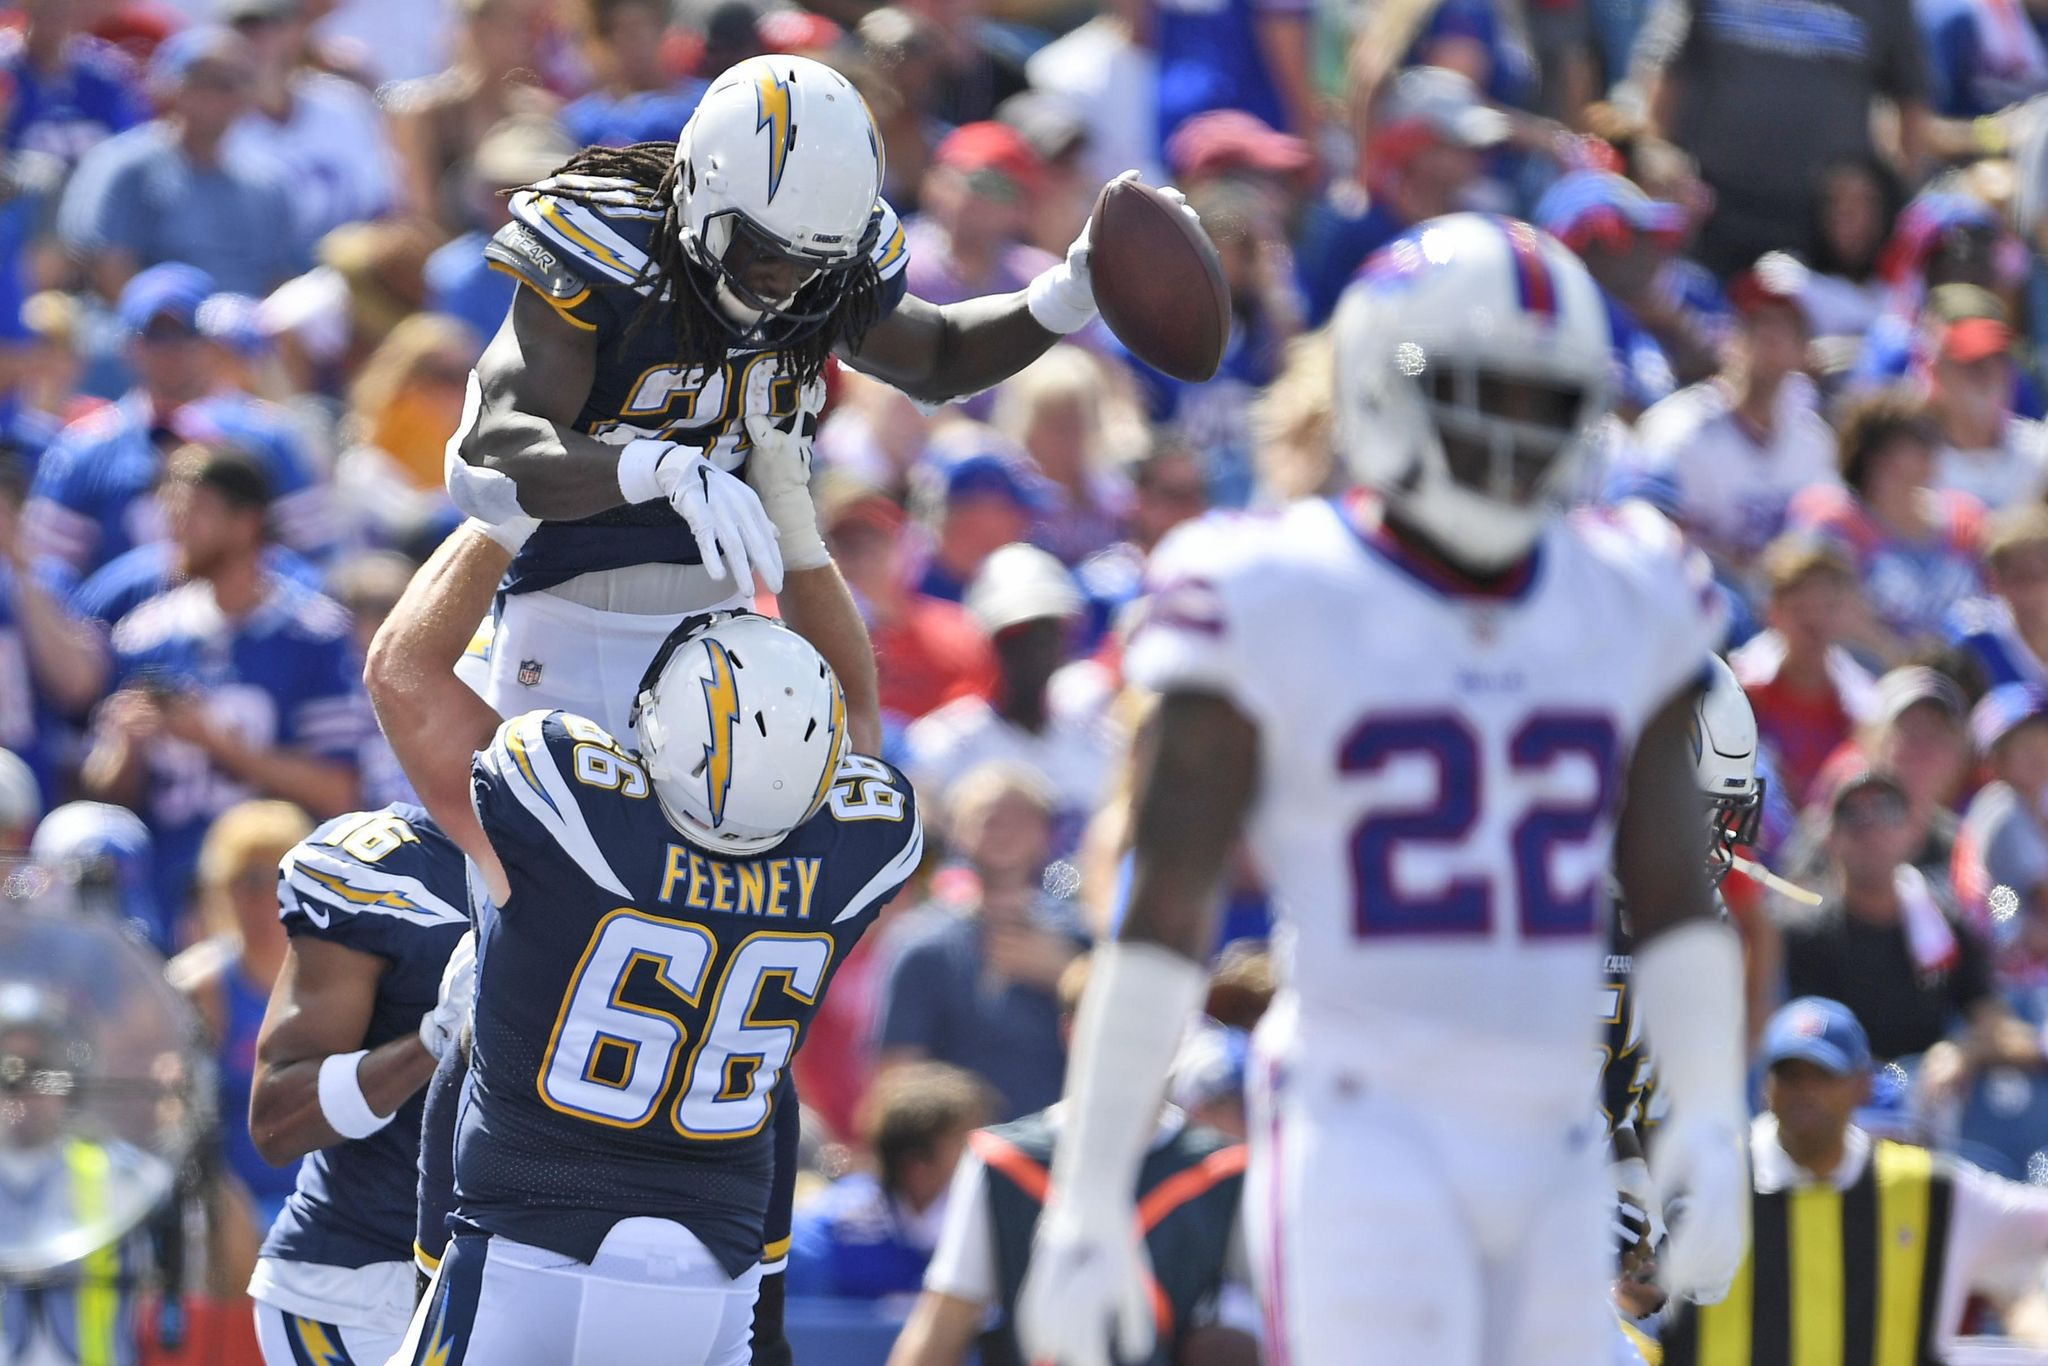 Chargers RB Gordon showing versatility as a receiv...